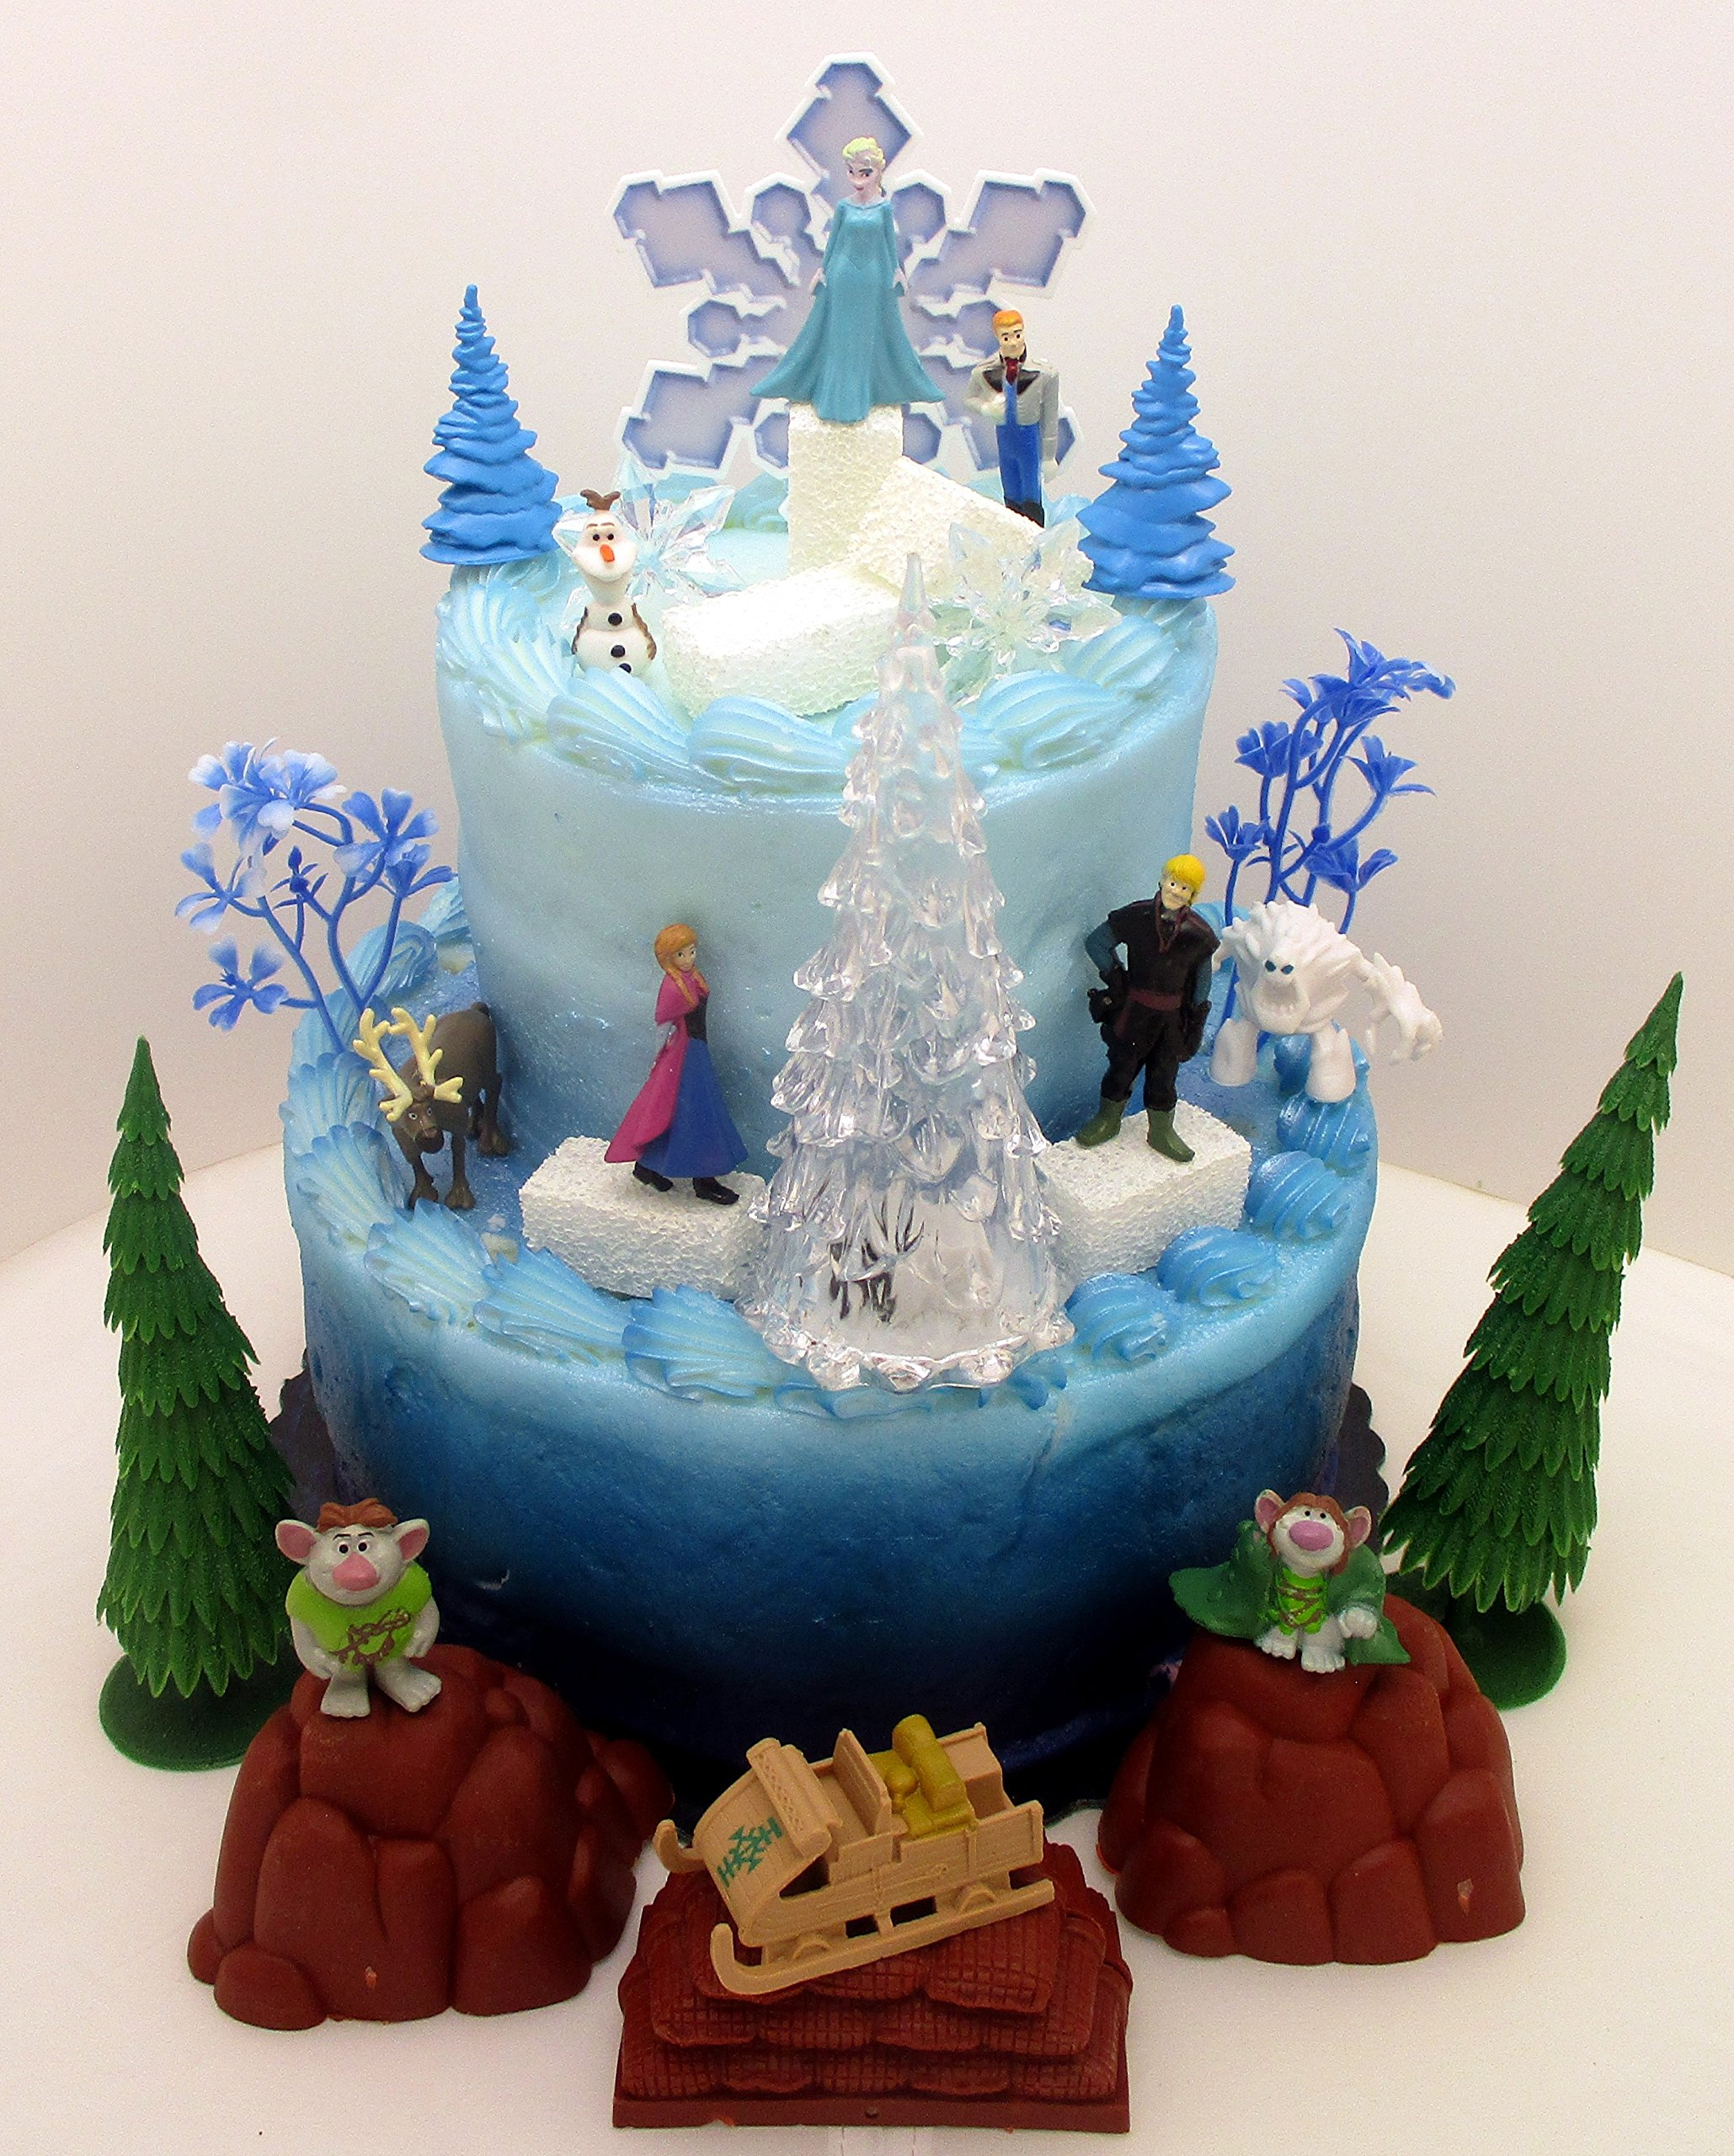 FROZEN 35 Piece Frozen Cake Topper Set Featuring 2'' Winter Wonderland Figures of Elsa, Anna, Sven, Hans, Kristoff, Olaf, Marshmallow Snow Monster, Bulda Troll, King Troll and Other Winter Themed Accessories - Cake Topper Set Includes All Items Shown